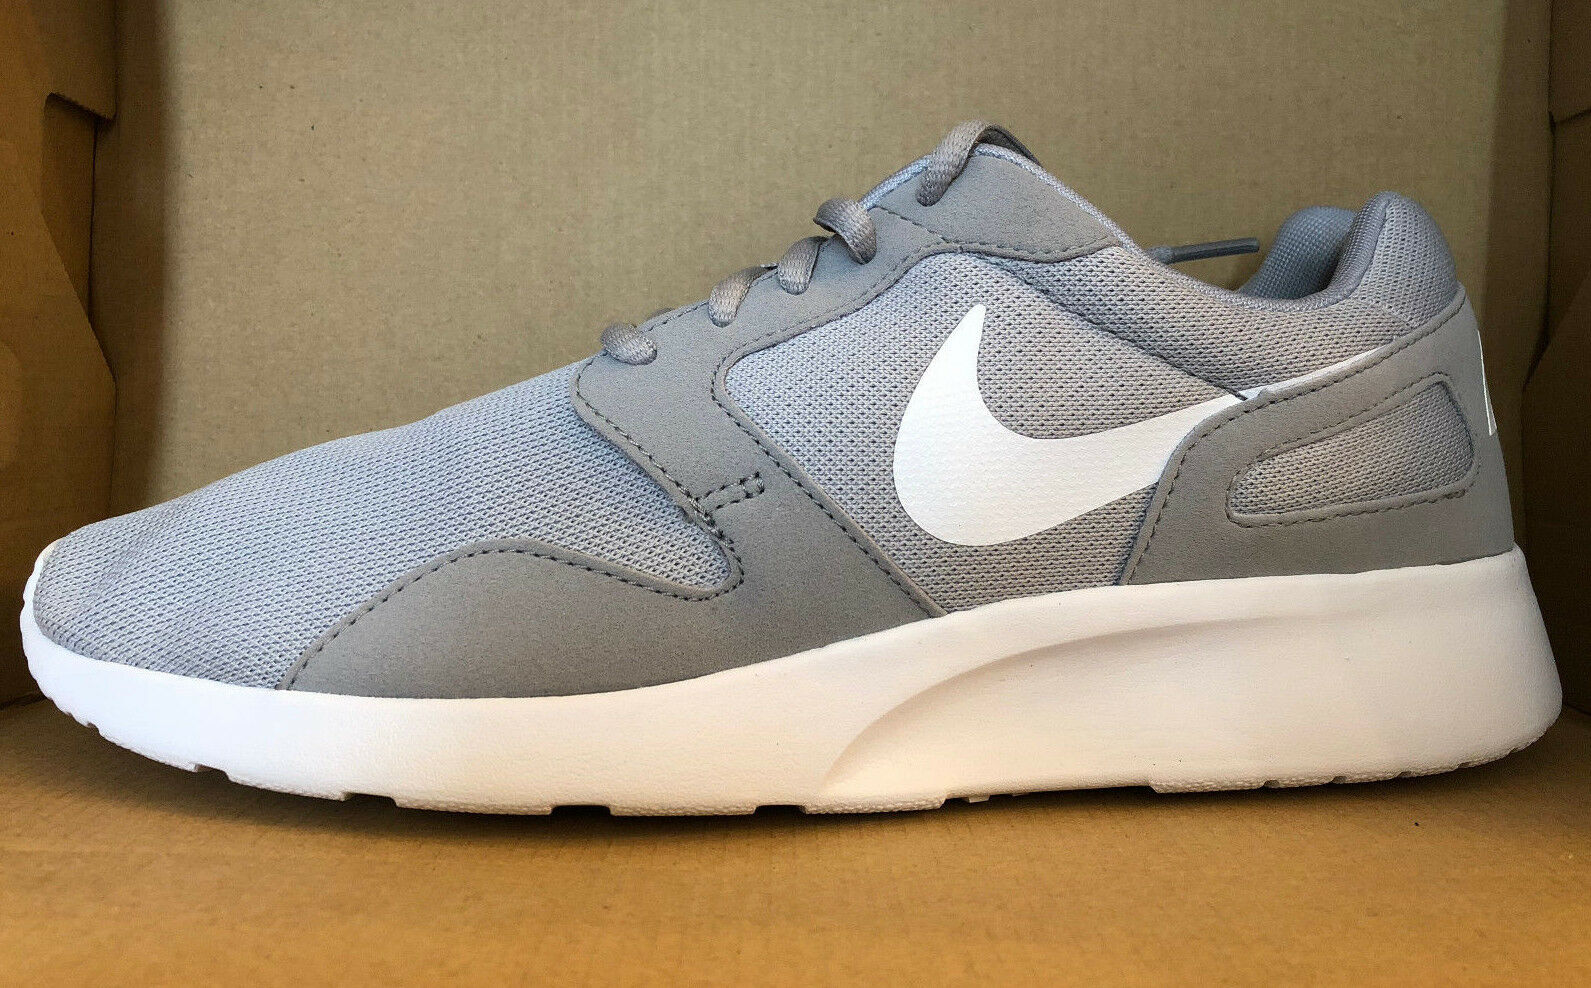 NIKE Femme KAISHI Chaussures Taille 12 Gris  Blanc  654845 014